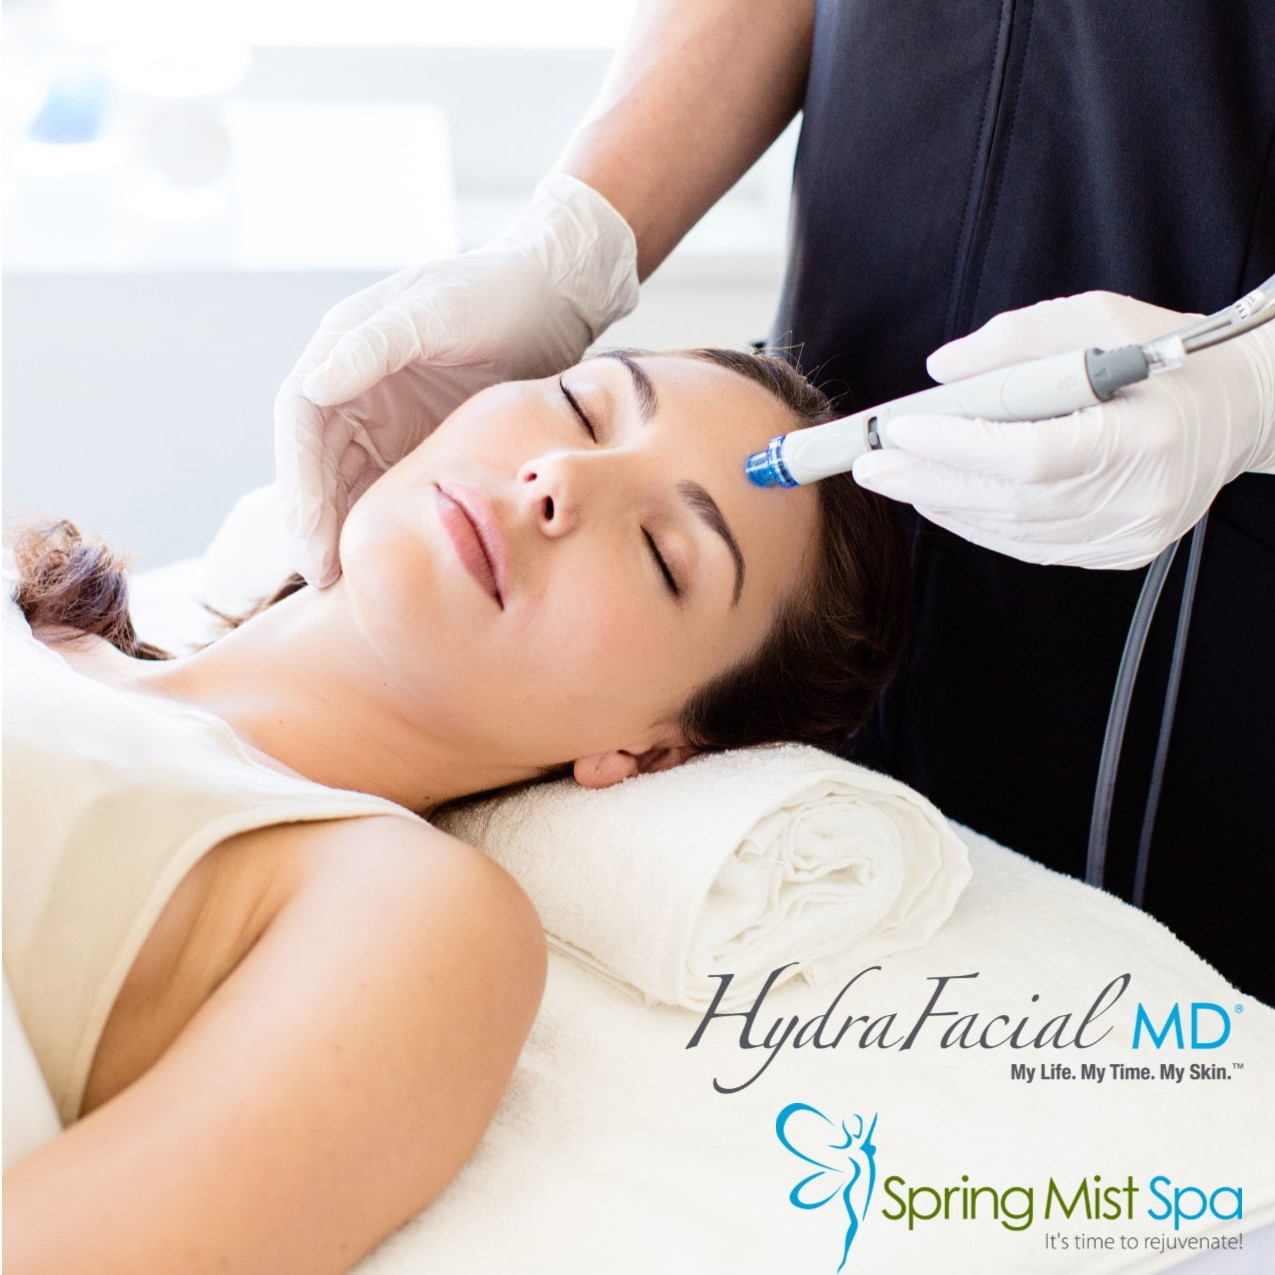 HydraFacial MD at Spring Mist Spa